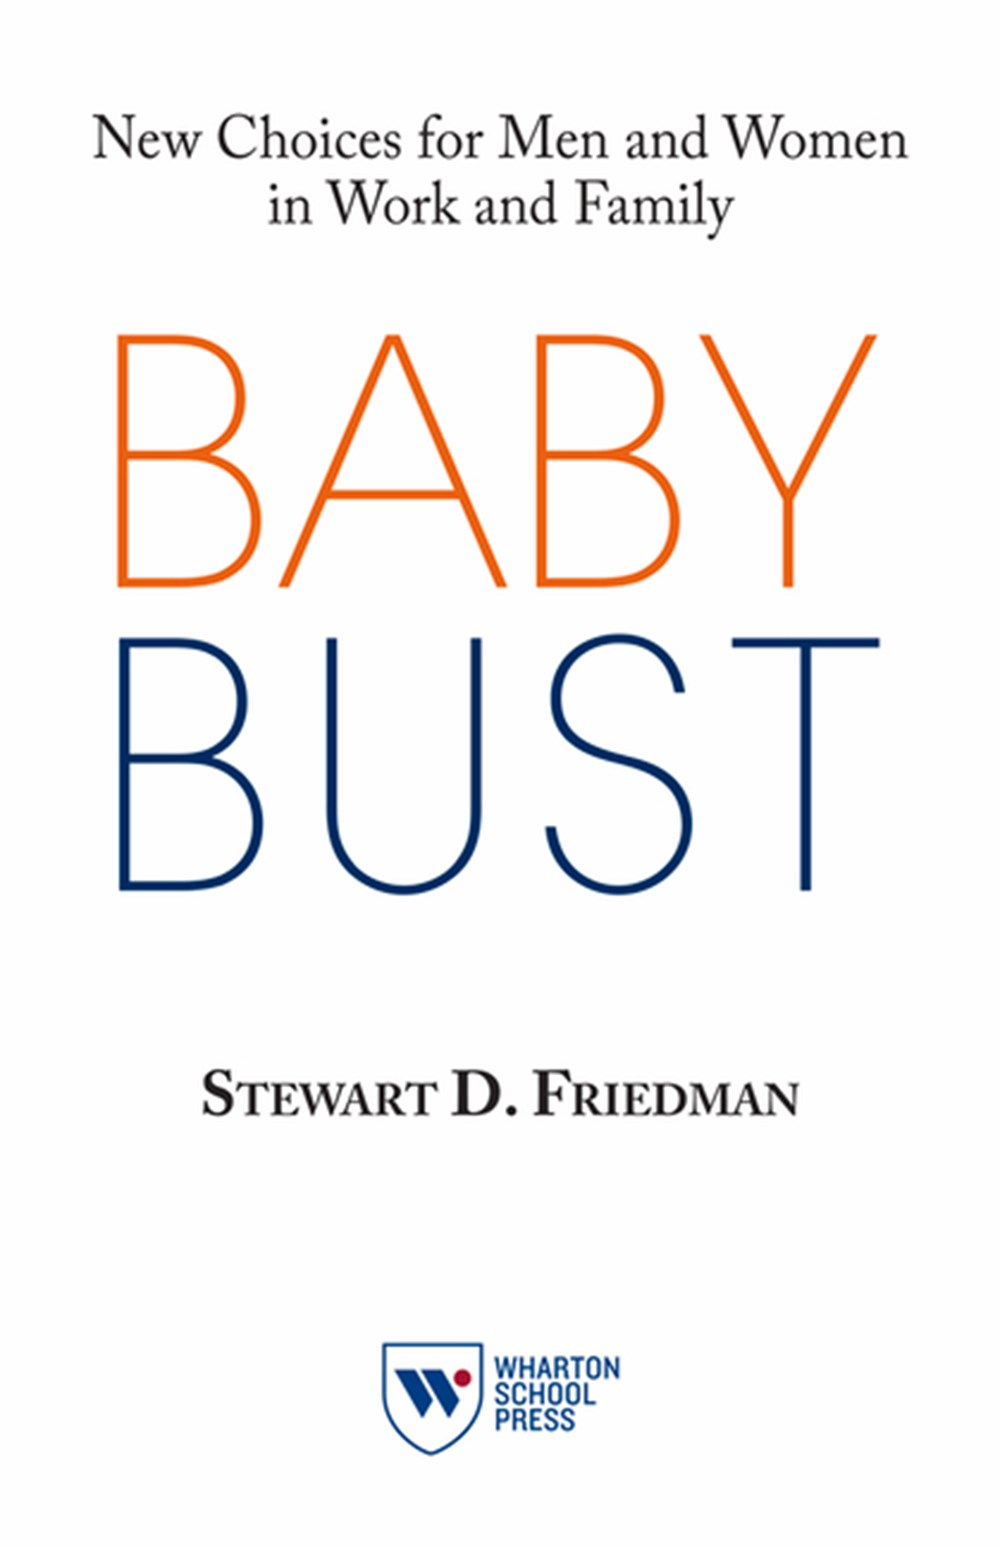 Baby Bust New Choices for Men and Women in Work and Family